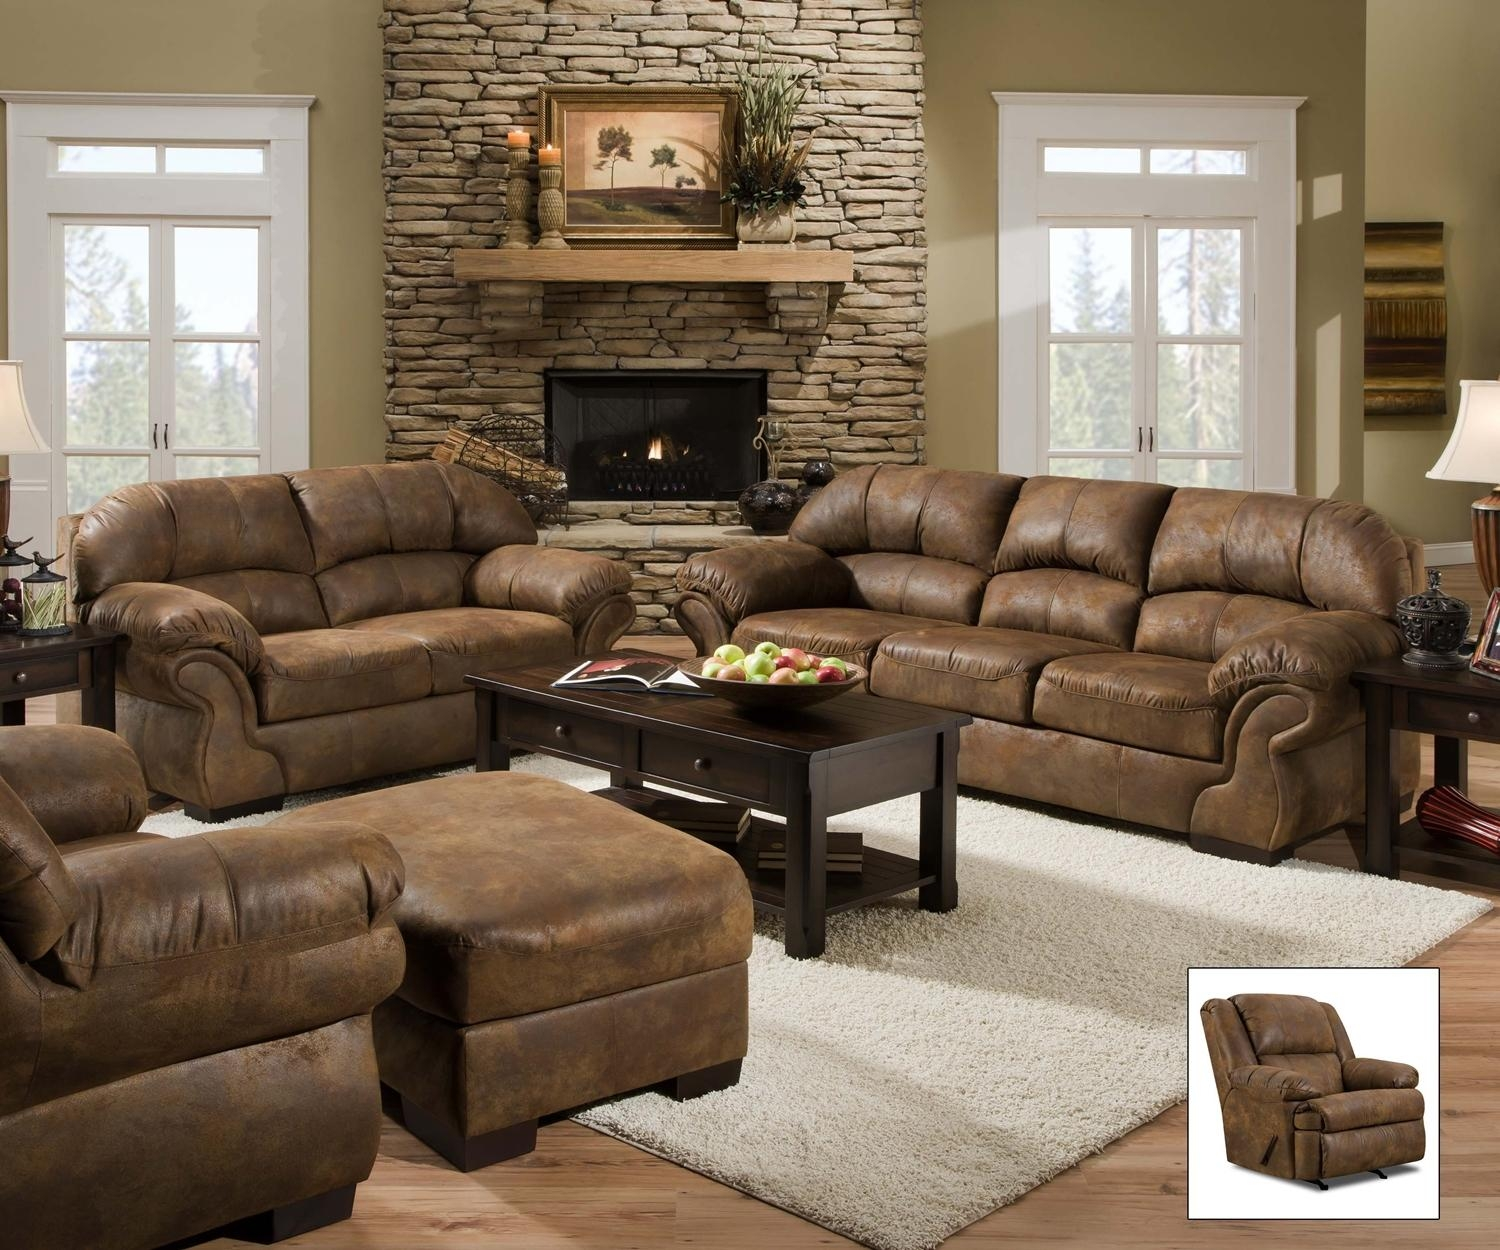 Pinto Tobacco Faux Leather Sofasimmons Within Simmons Leather Sofas And Loveseats (Image 5 of 20)